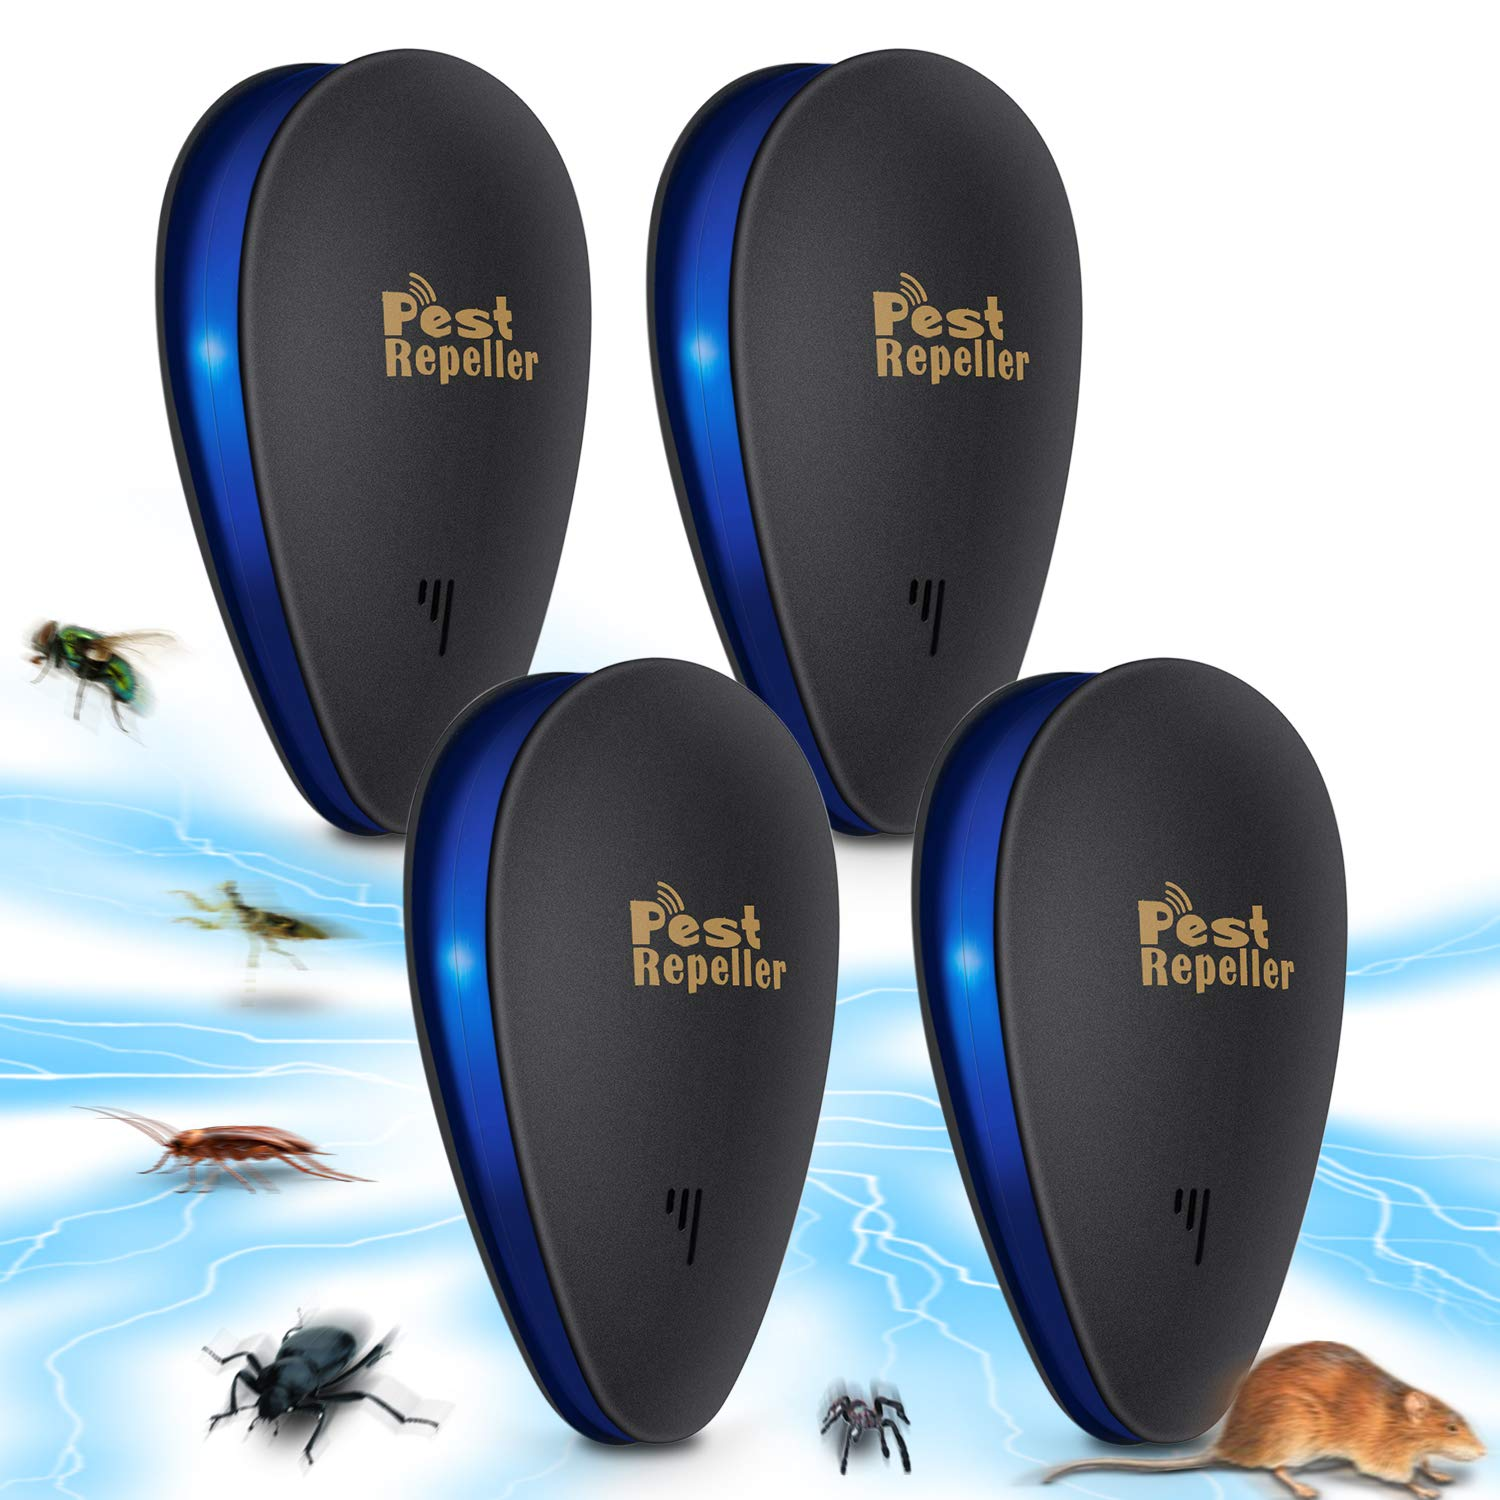 Pest Repeller Ultrasonic Electronic Pest Control Repellent Reject Plug in Home Indoor and Outdoor Warehouse Get Rid of Mosquito Rats Squirrel Flea Roaches Rodent Insect-Black 4 PCS